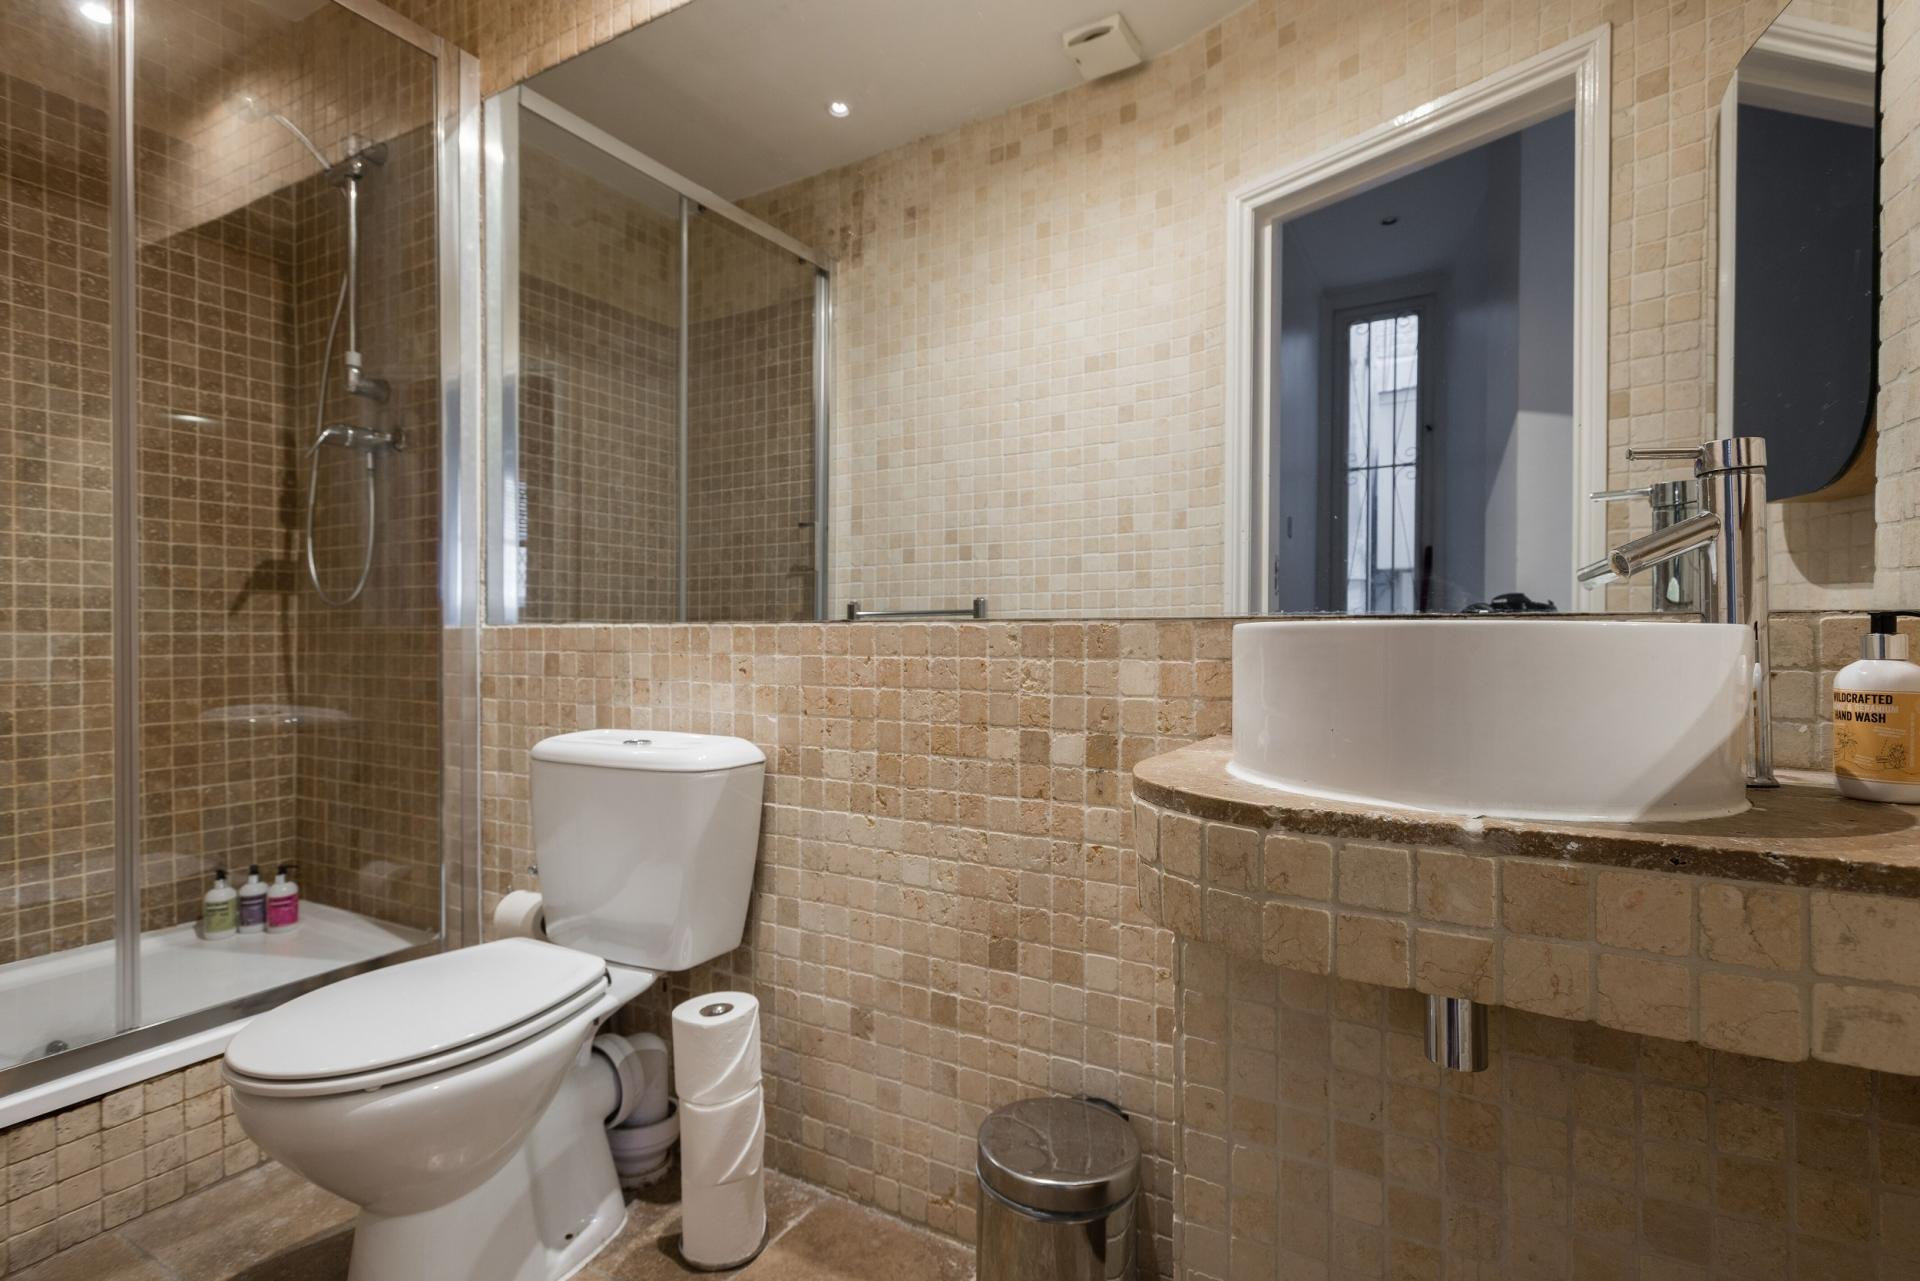 Shower at The Bayswater Gardens House, Bayswater, London